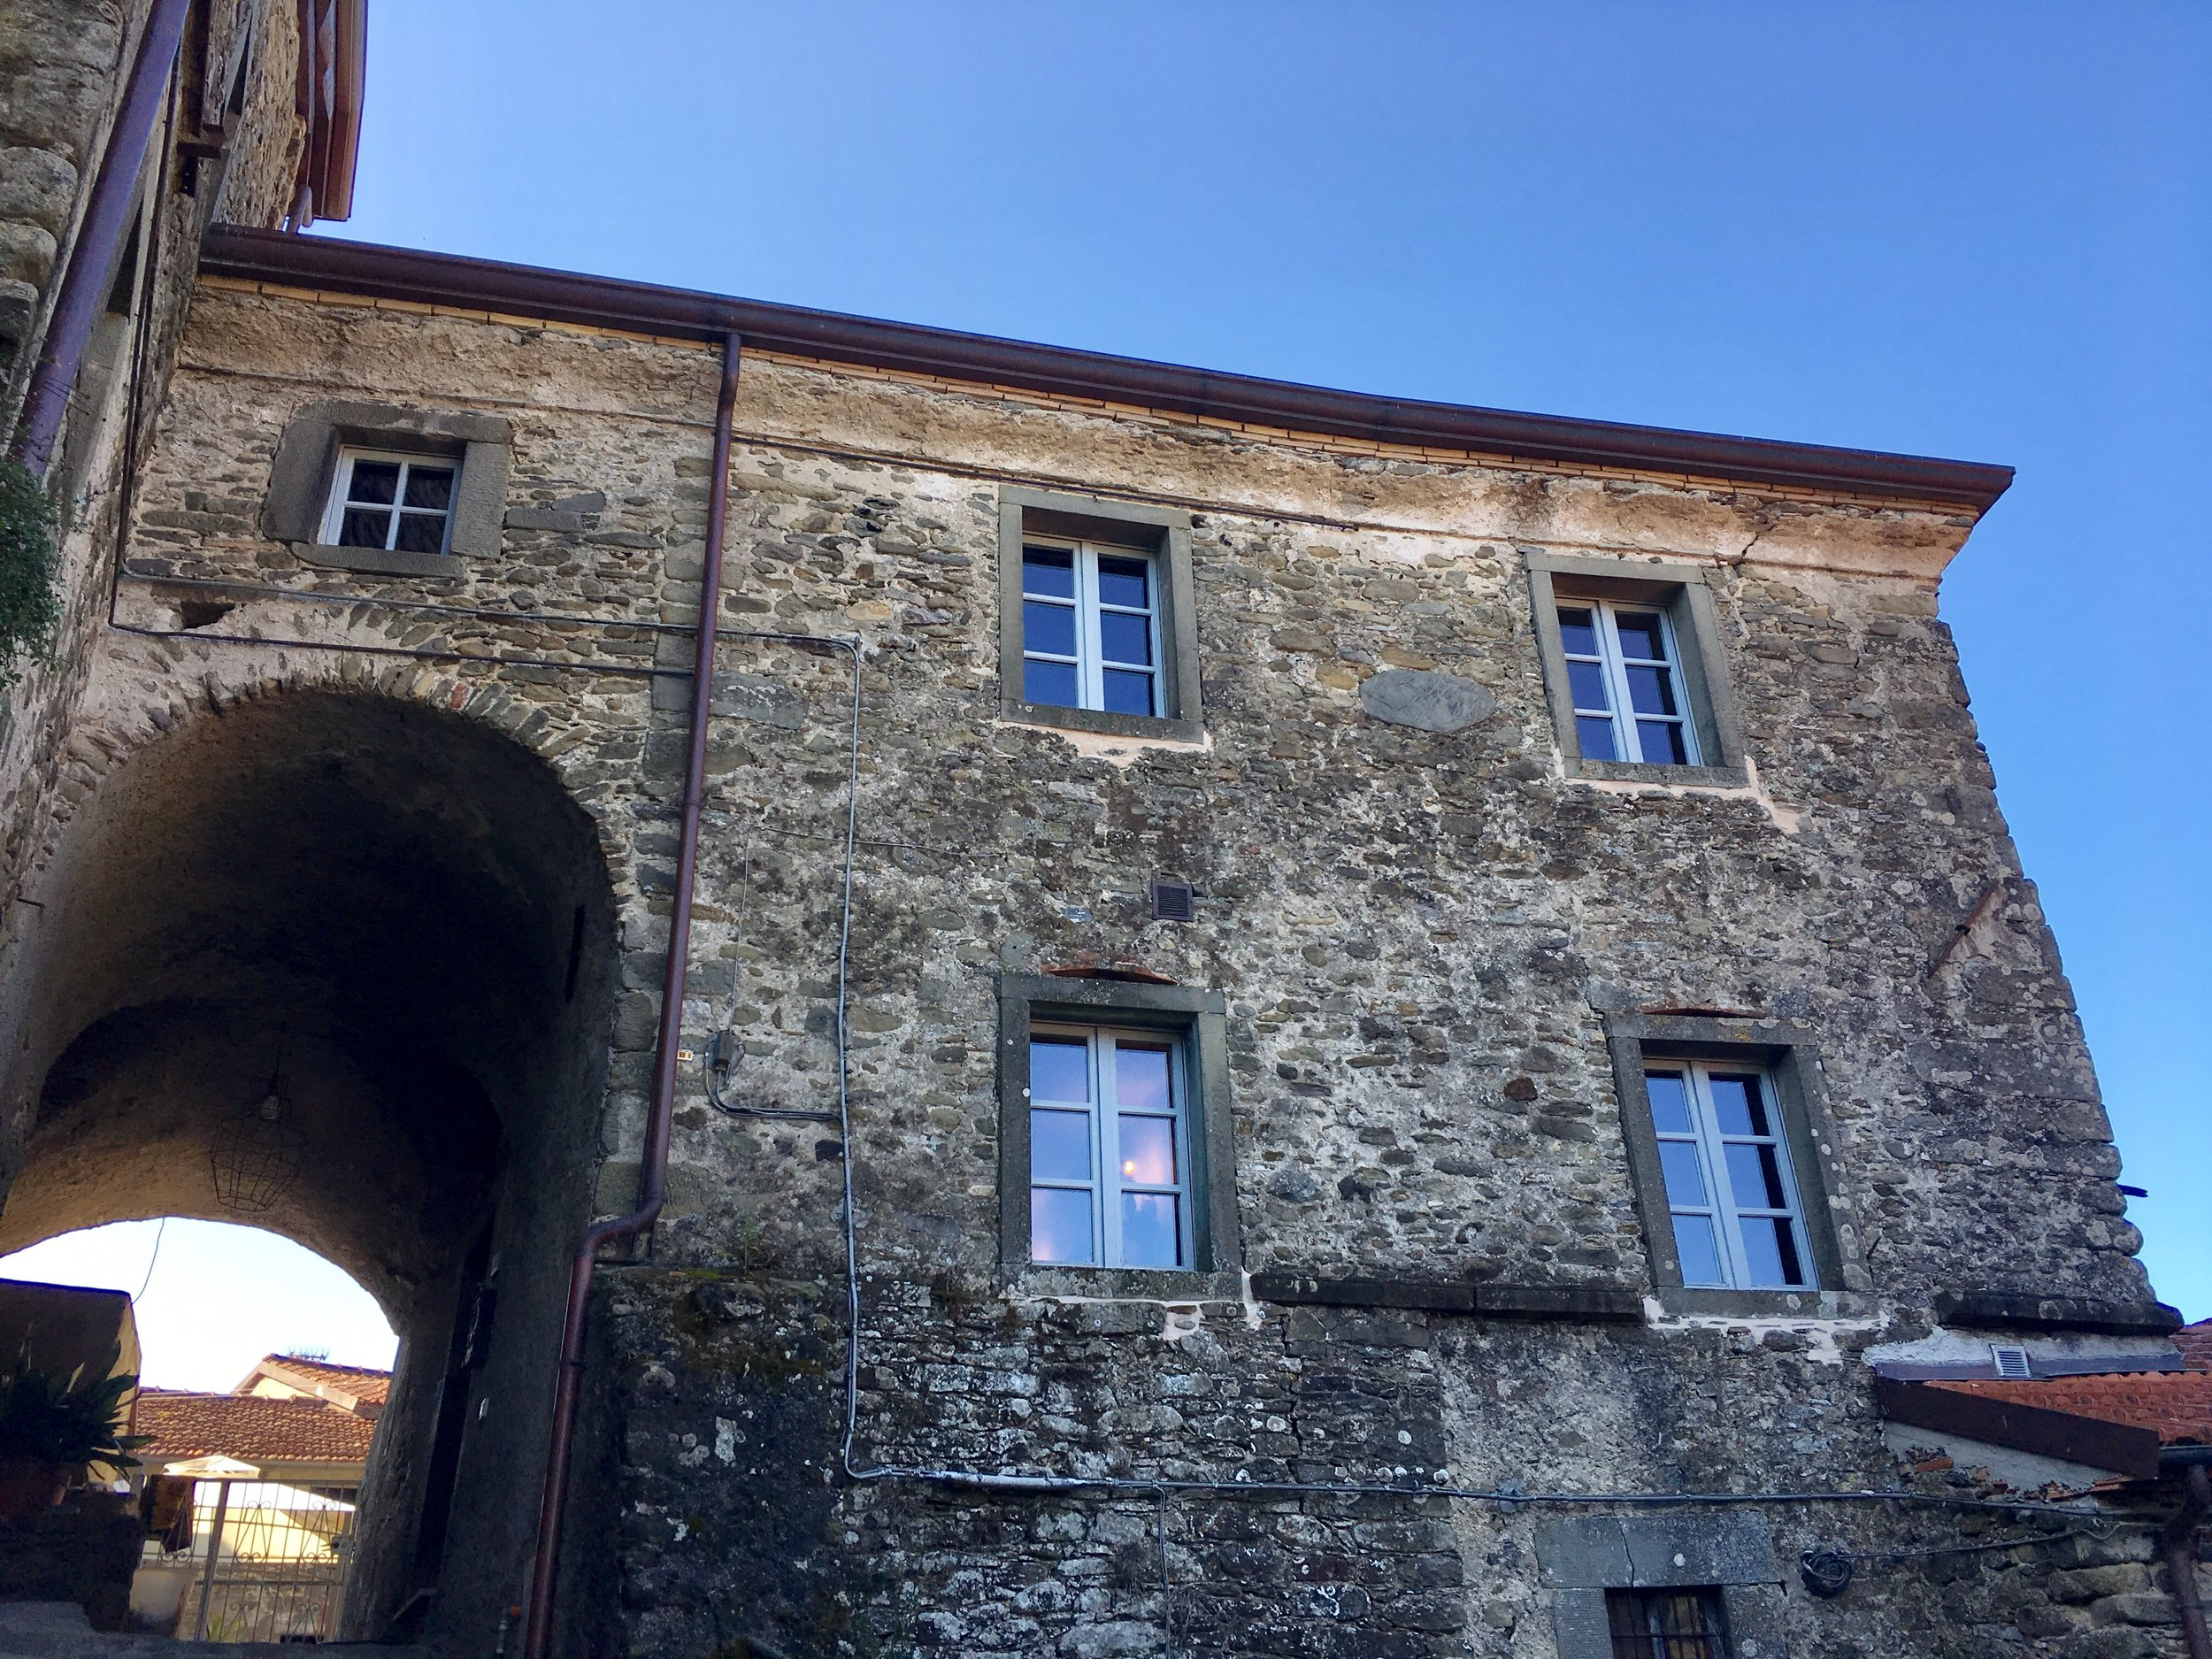 View from the ramp below La Casetta al Ponte built in the 1700's in the Medici-style of Tuscan architecture in the Lunigiana.